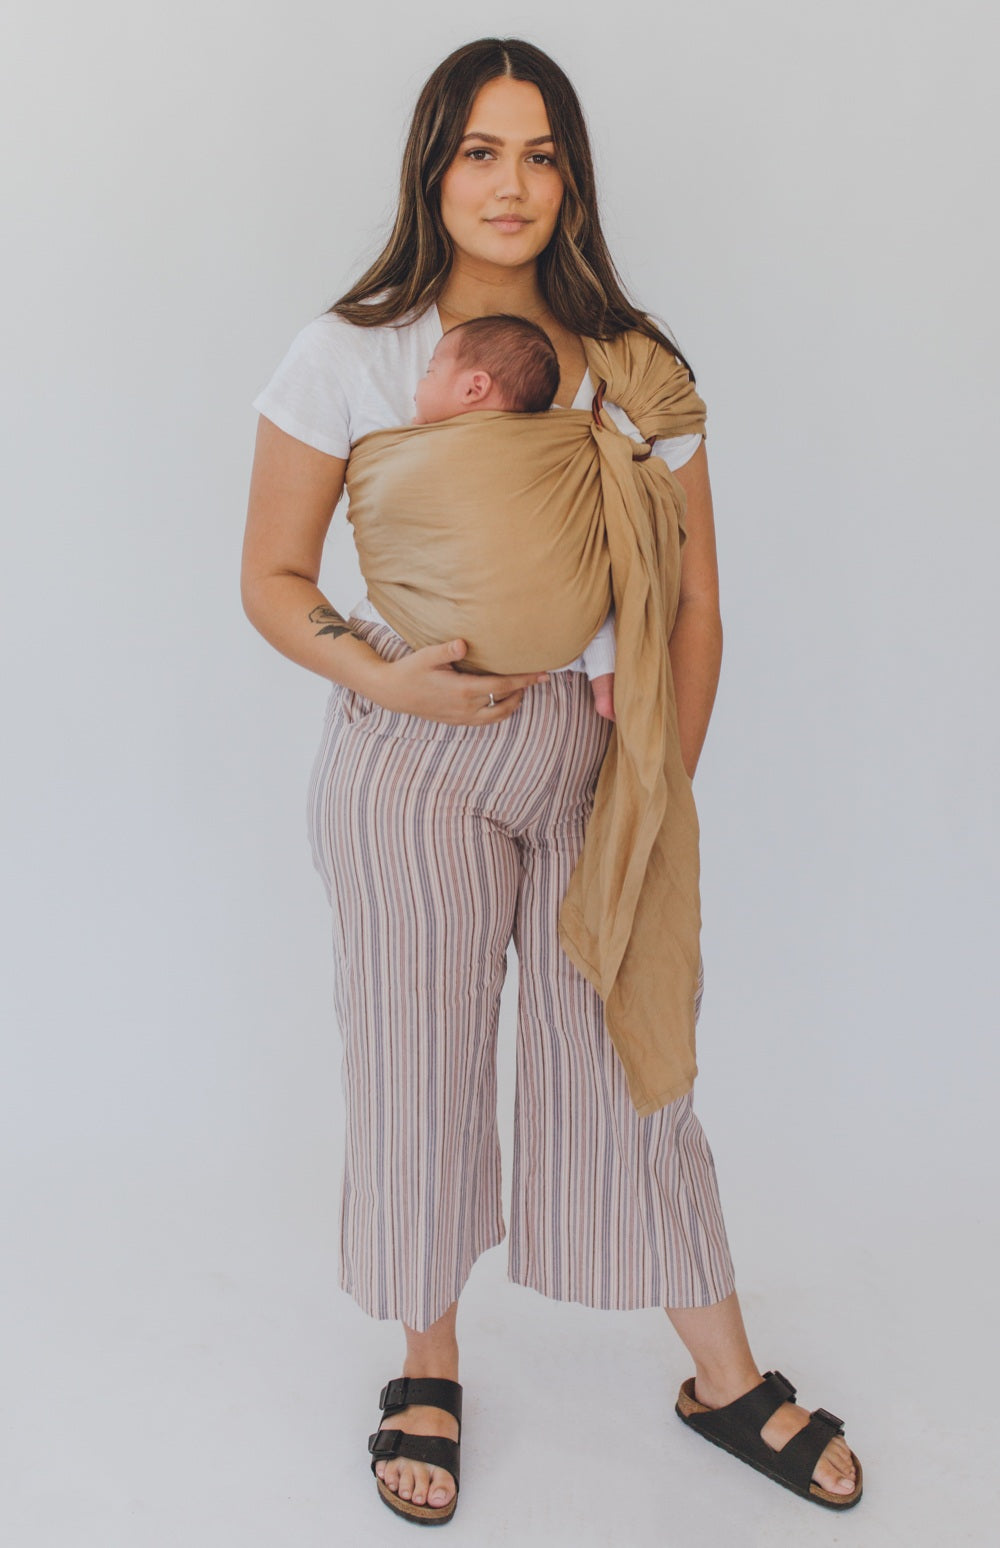 australia's best camel chekoh baby sling carrier for newborn, infants and toddlers